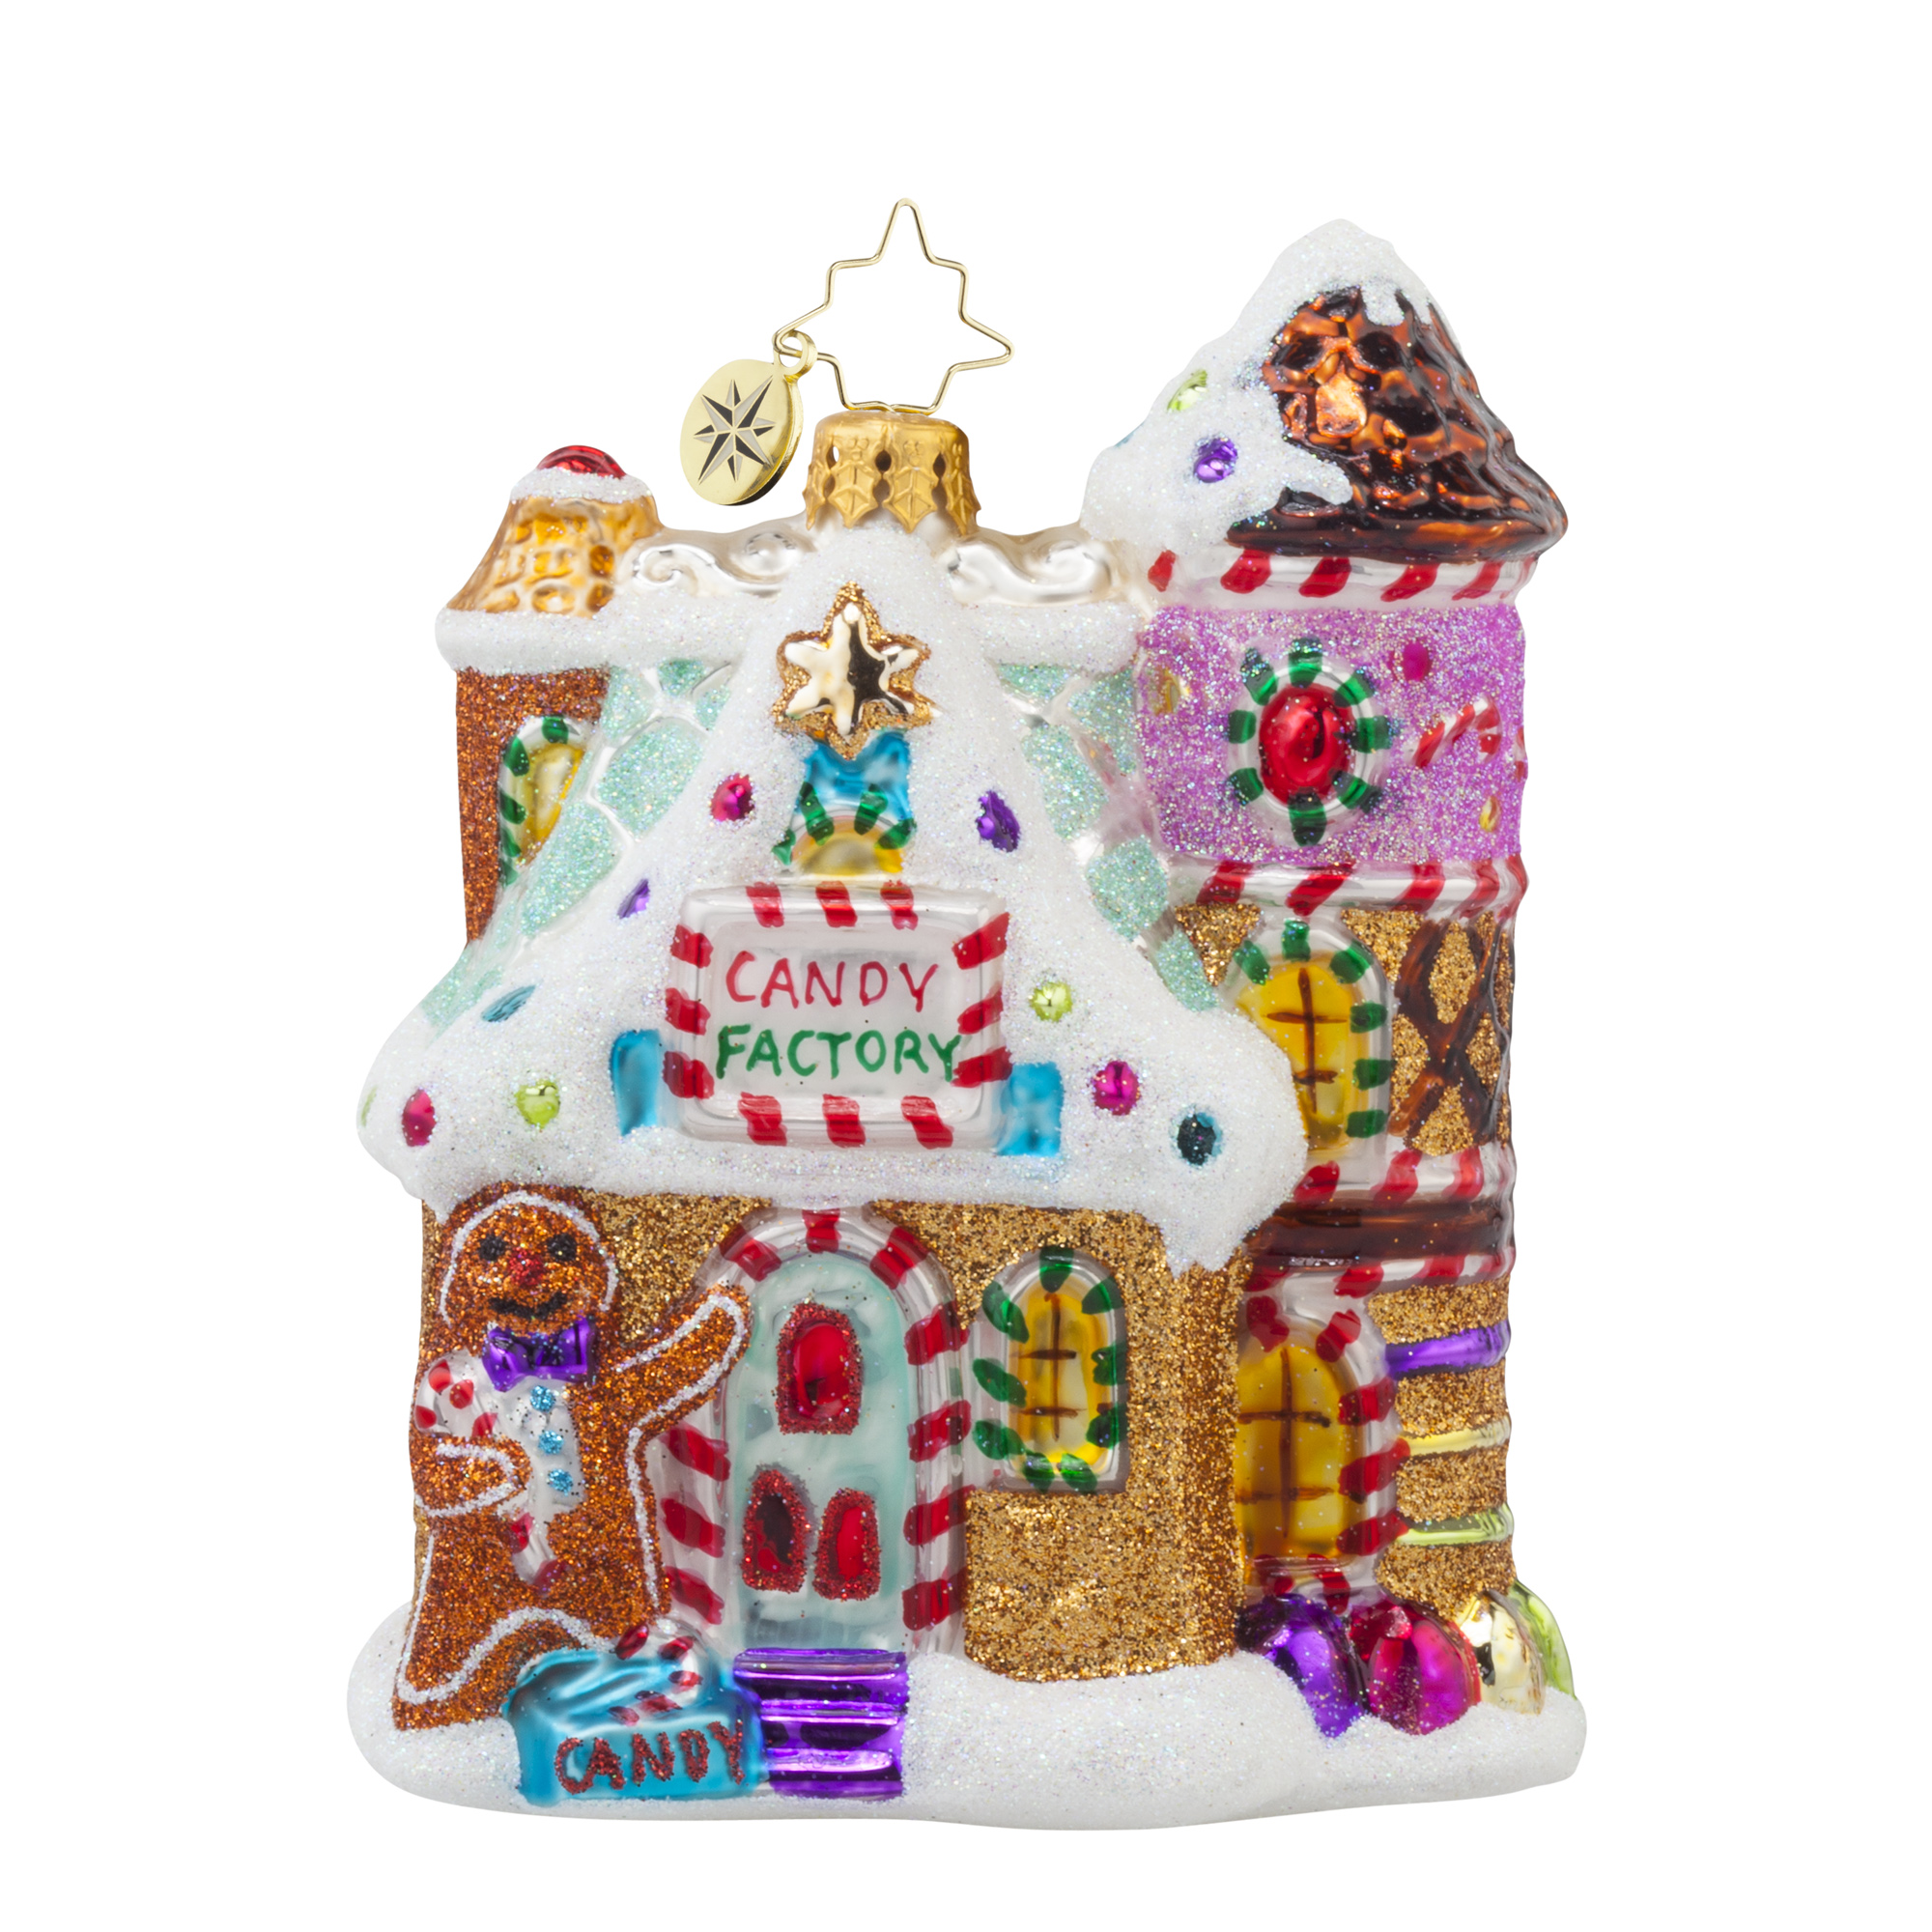 RADKO 1017747 SWEET FACTORY - CANDY FACTORY - GINGERBREAD ...